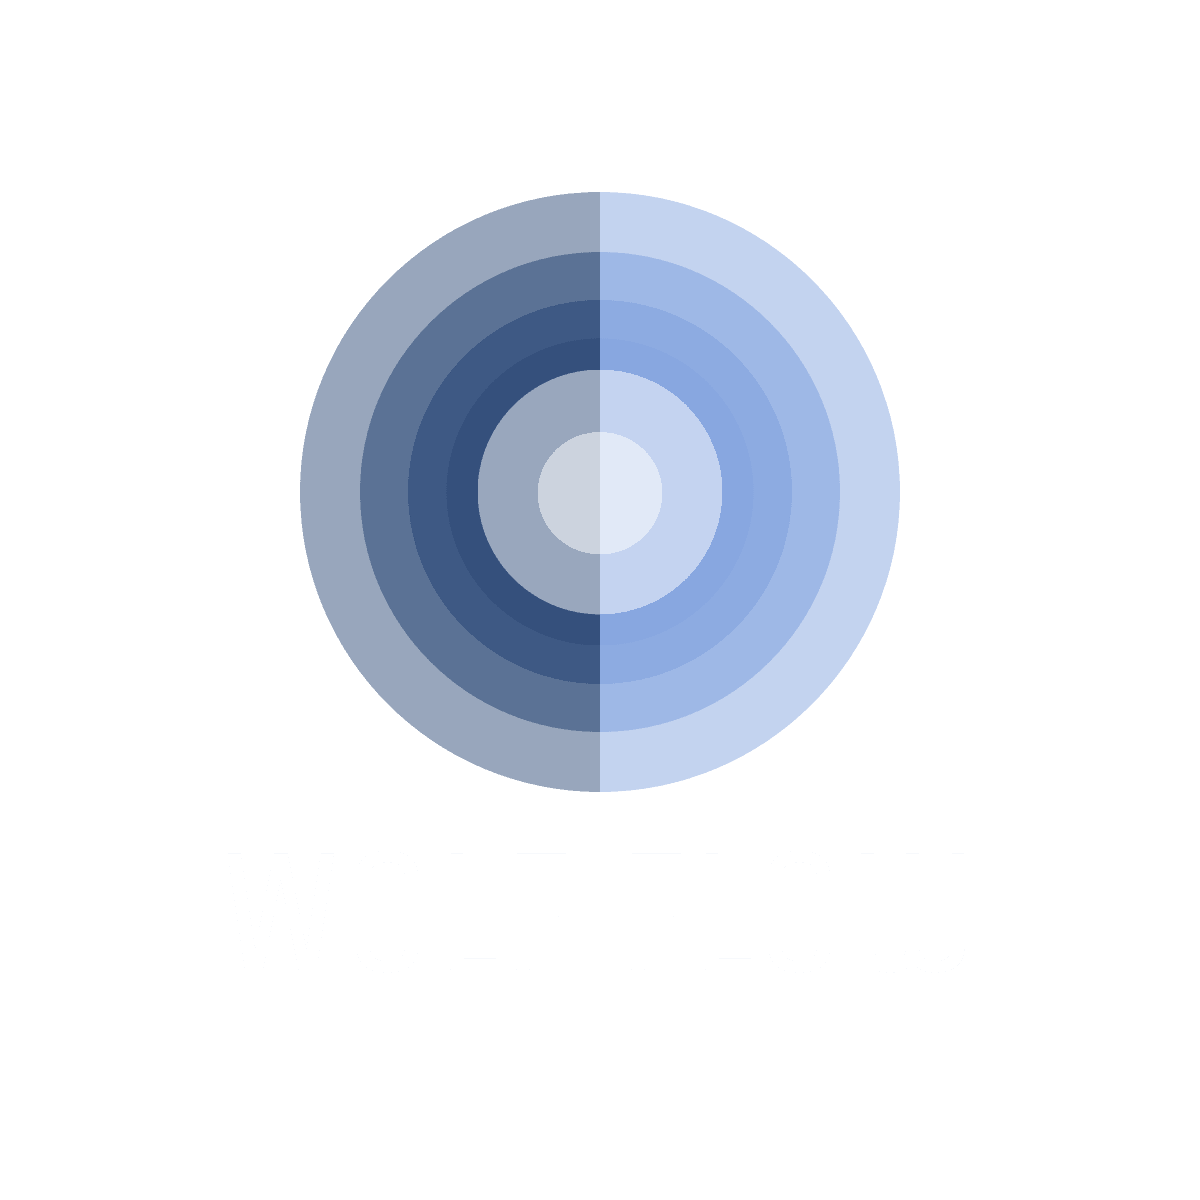 Wolf Flow Strategies - We help businesses attract more customers.